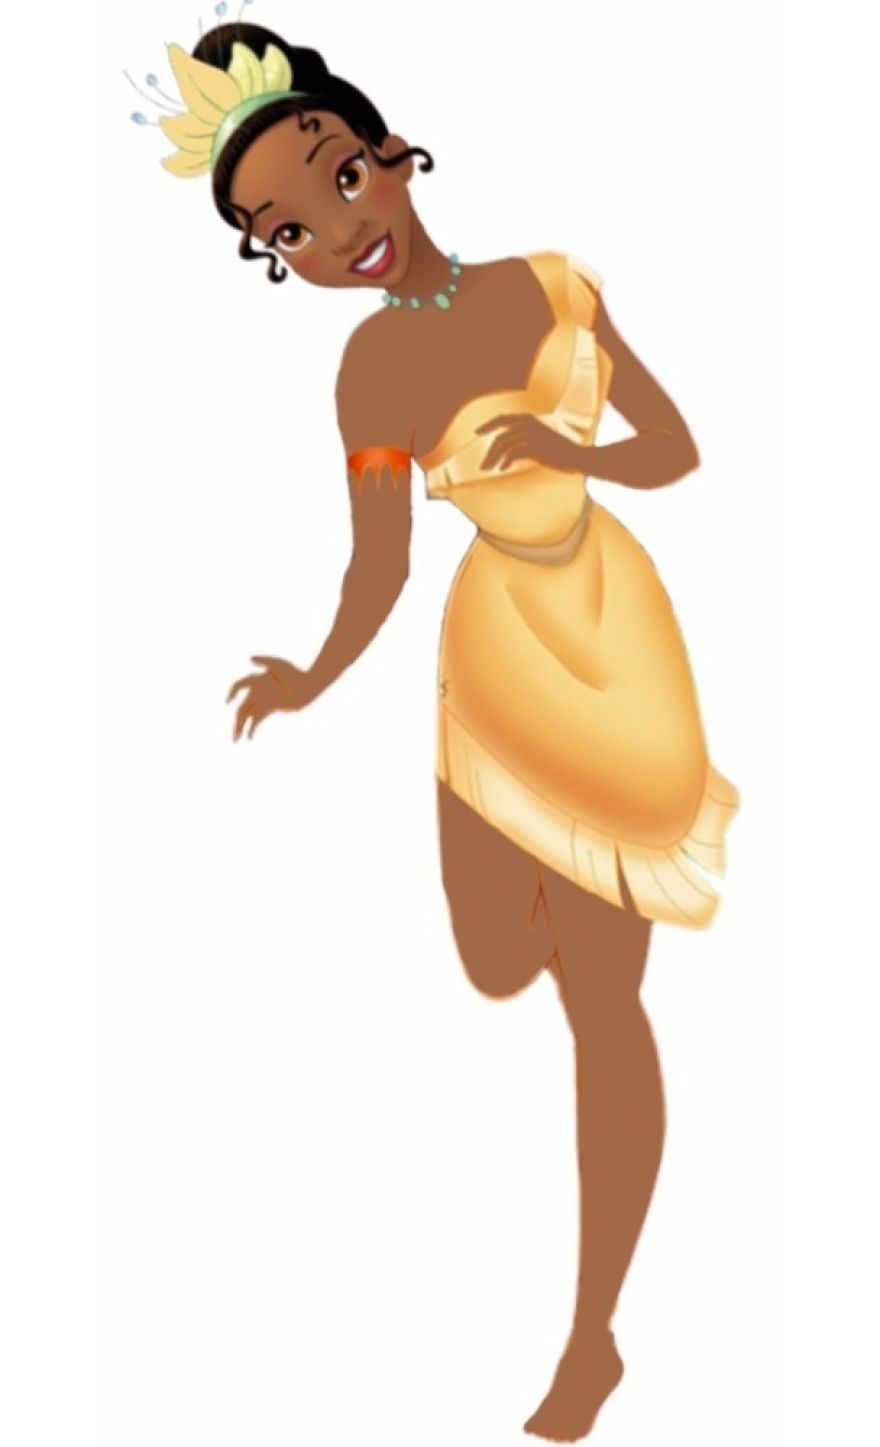 Tiana in Pocahontas